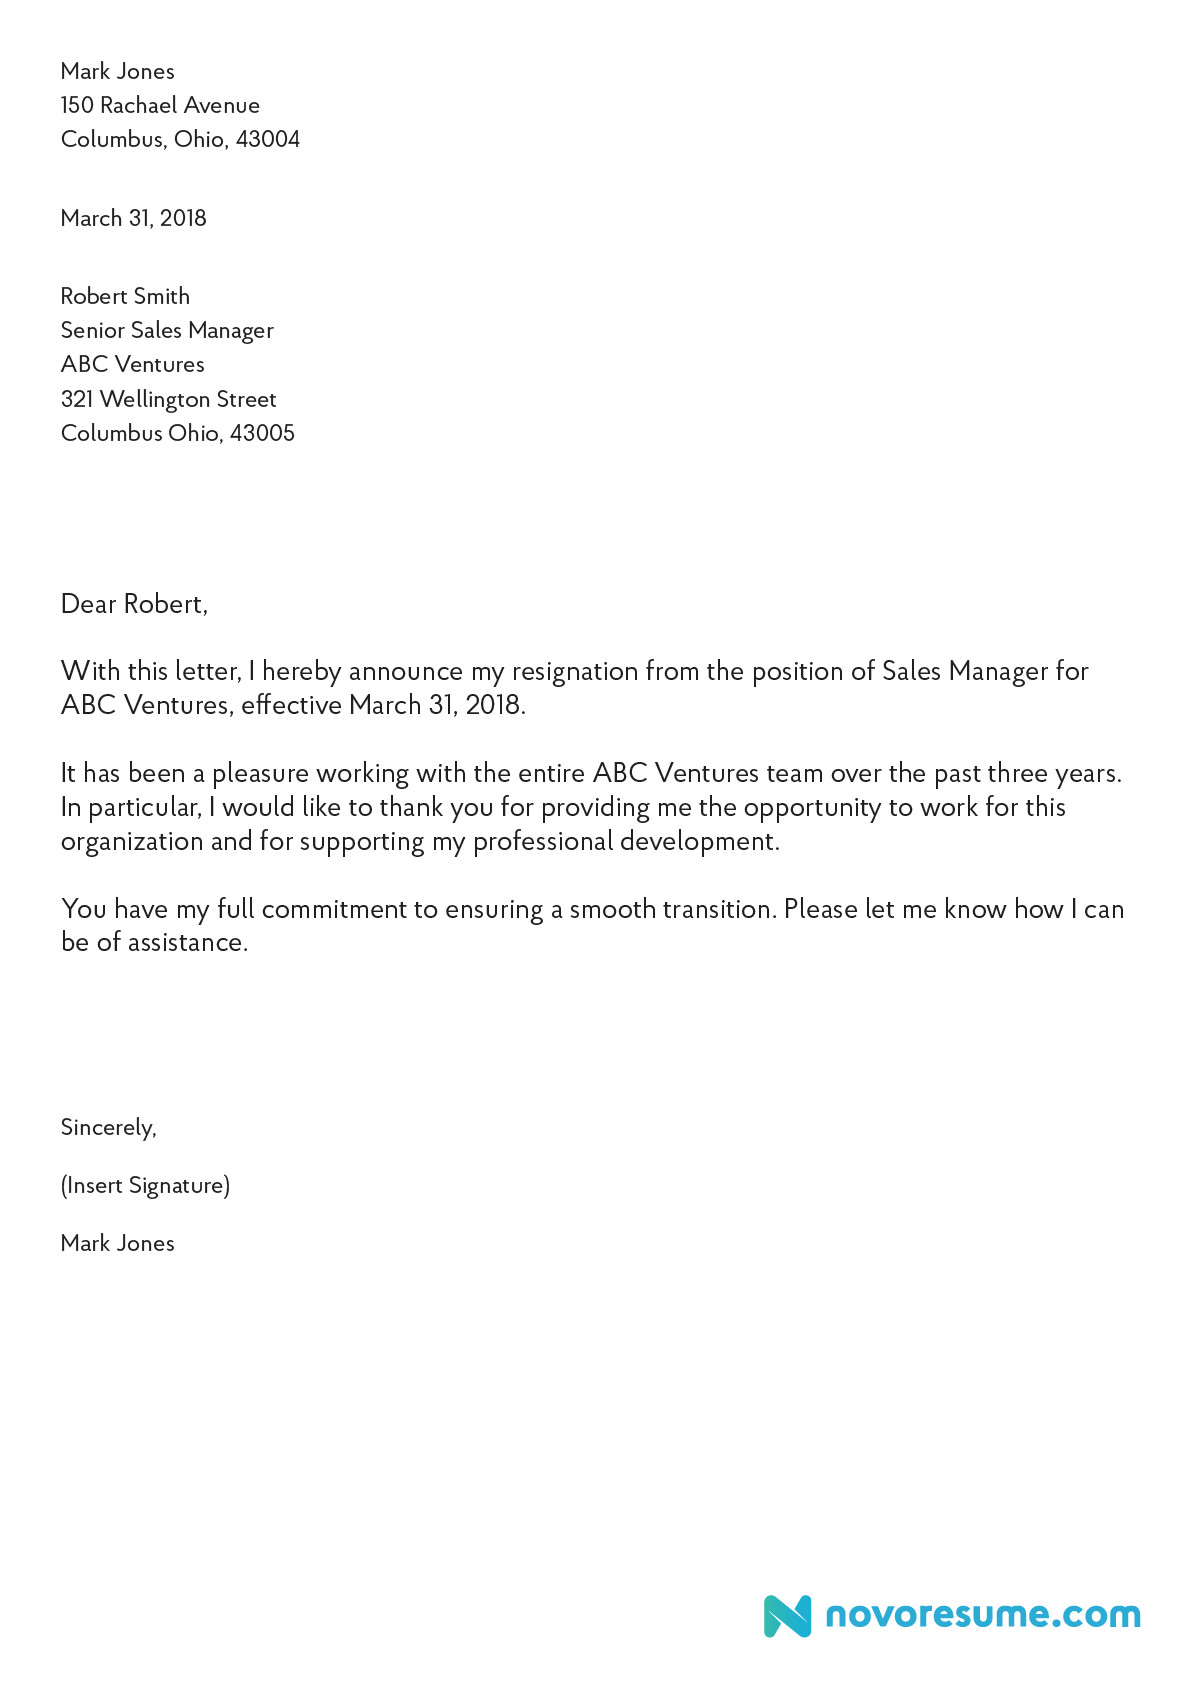 Letter Of Resignation Templates How to Write A Letter Of Resignation – 2019 Extensive Guide